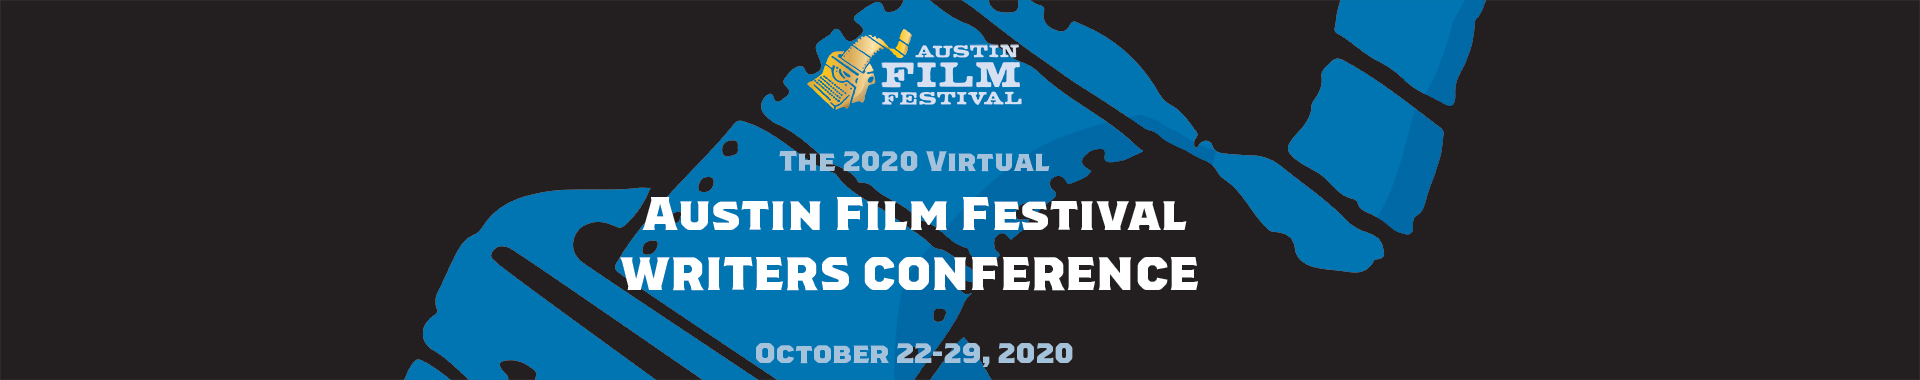 Austin Film Festival & Writers Conference